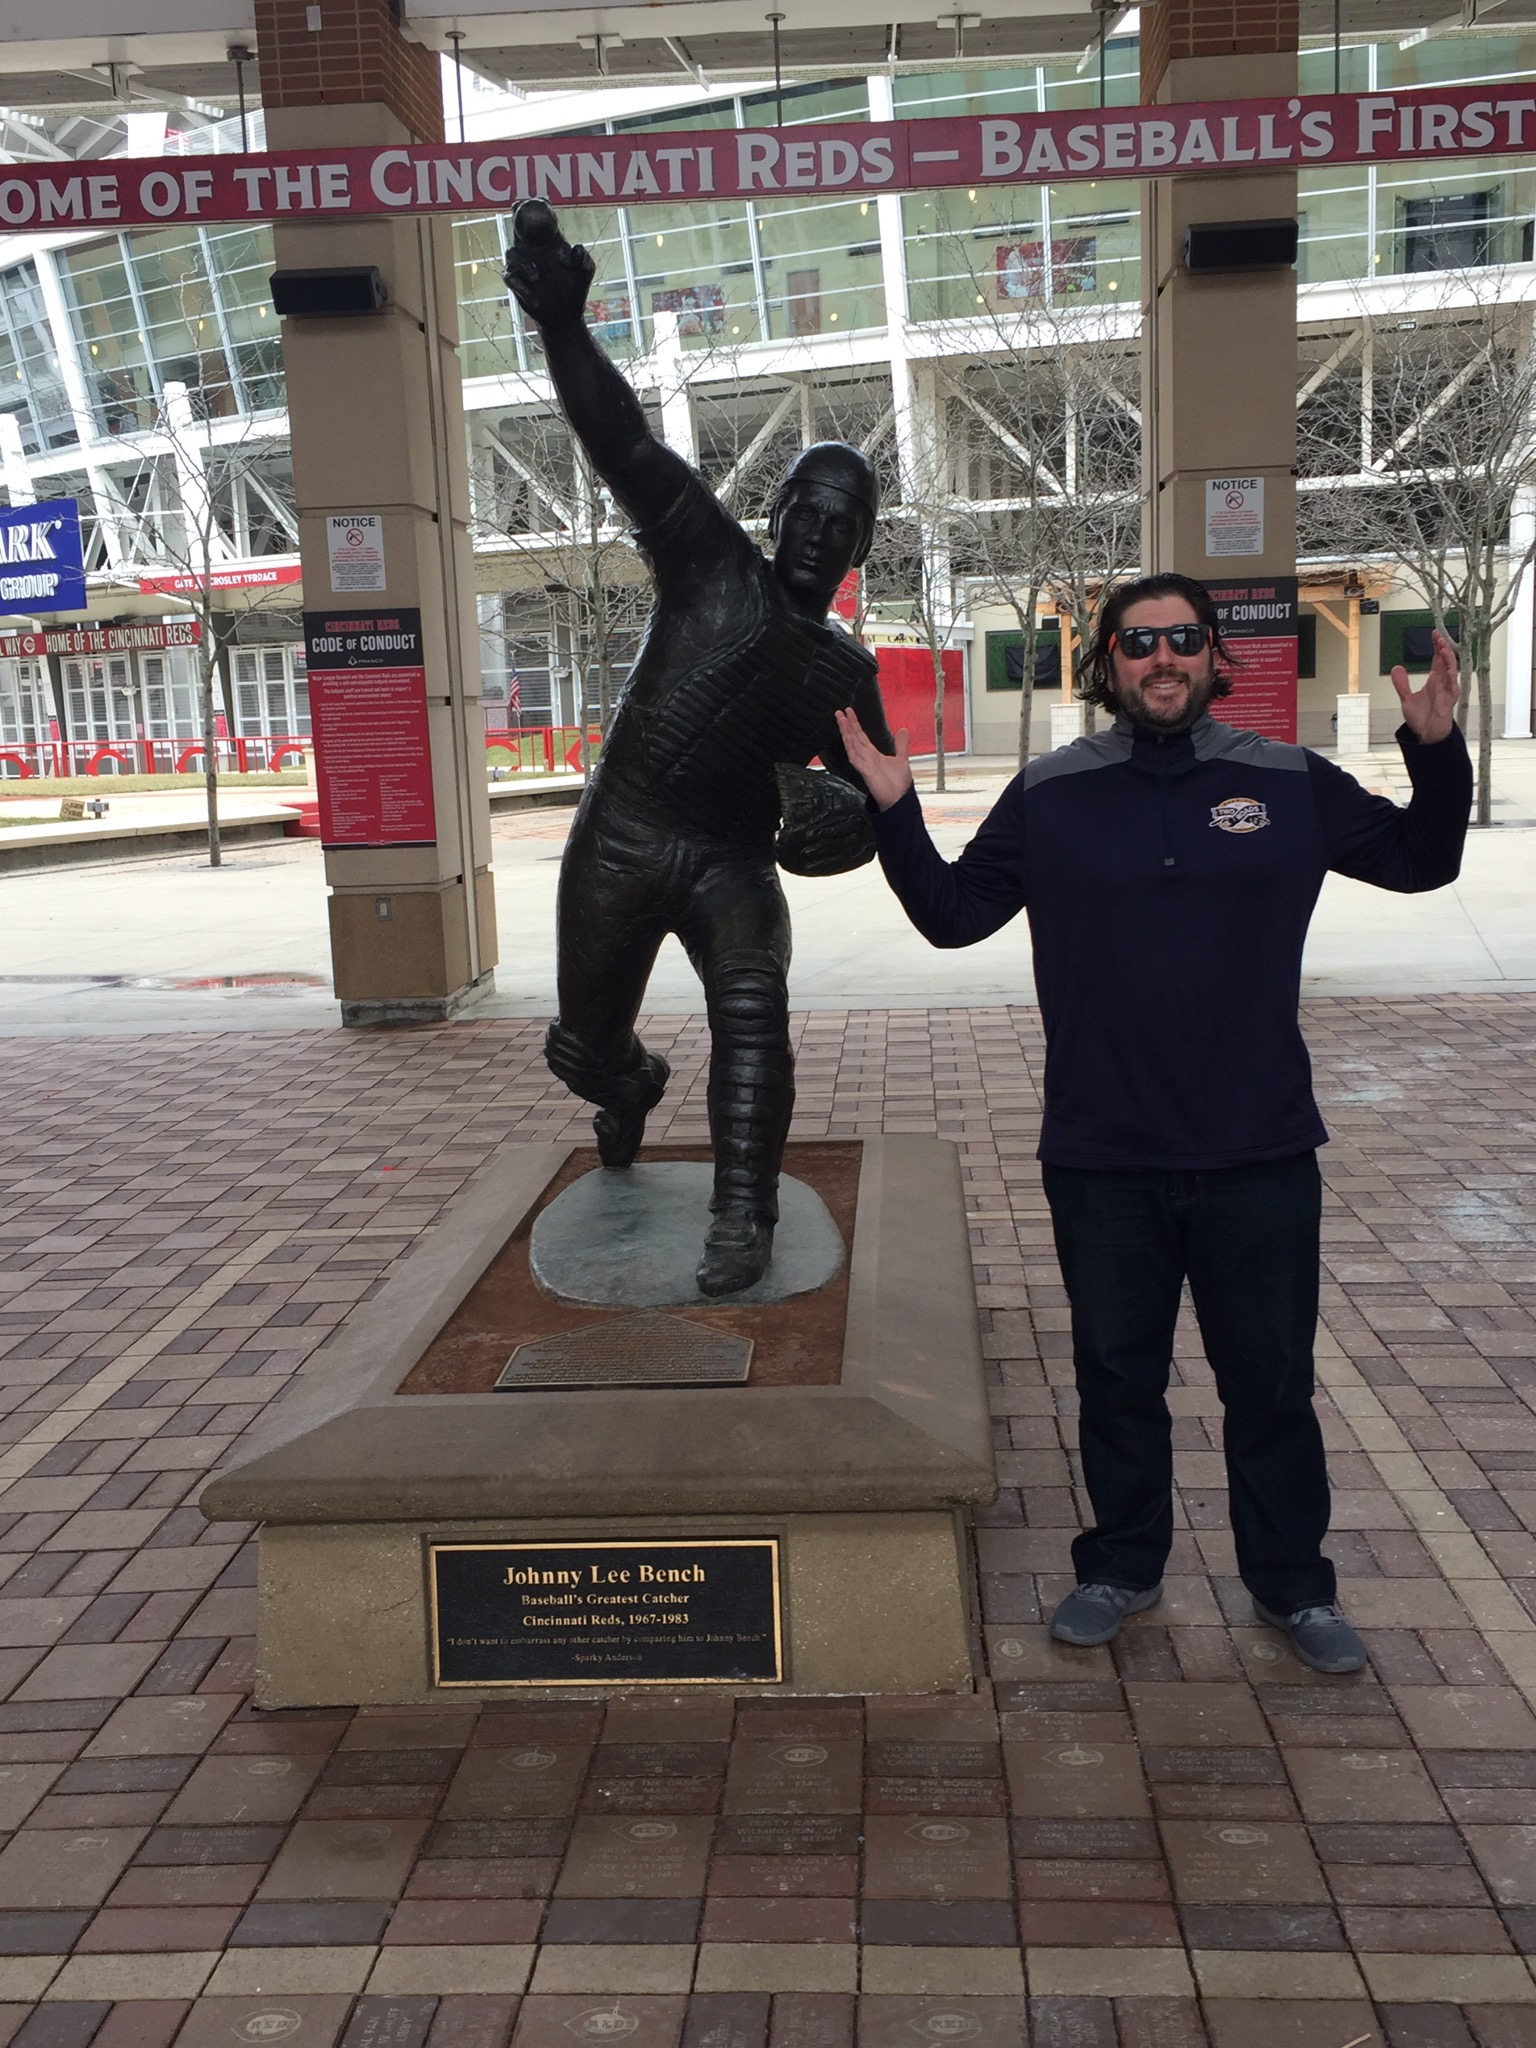 Lee shrugs at Johnny Bench (Cinci).